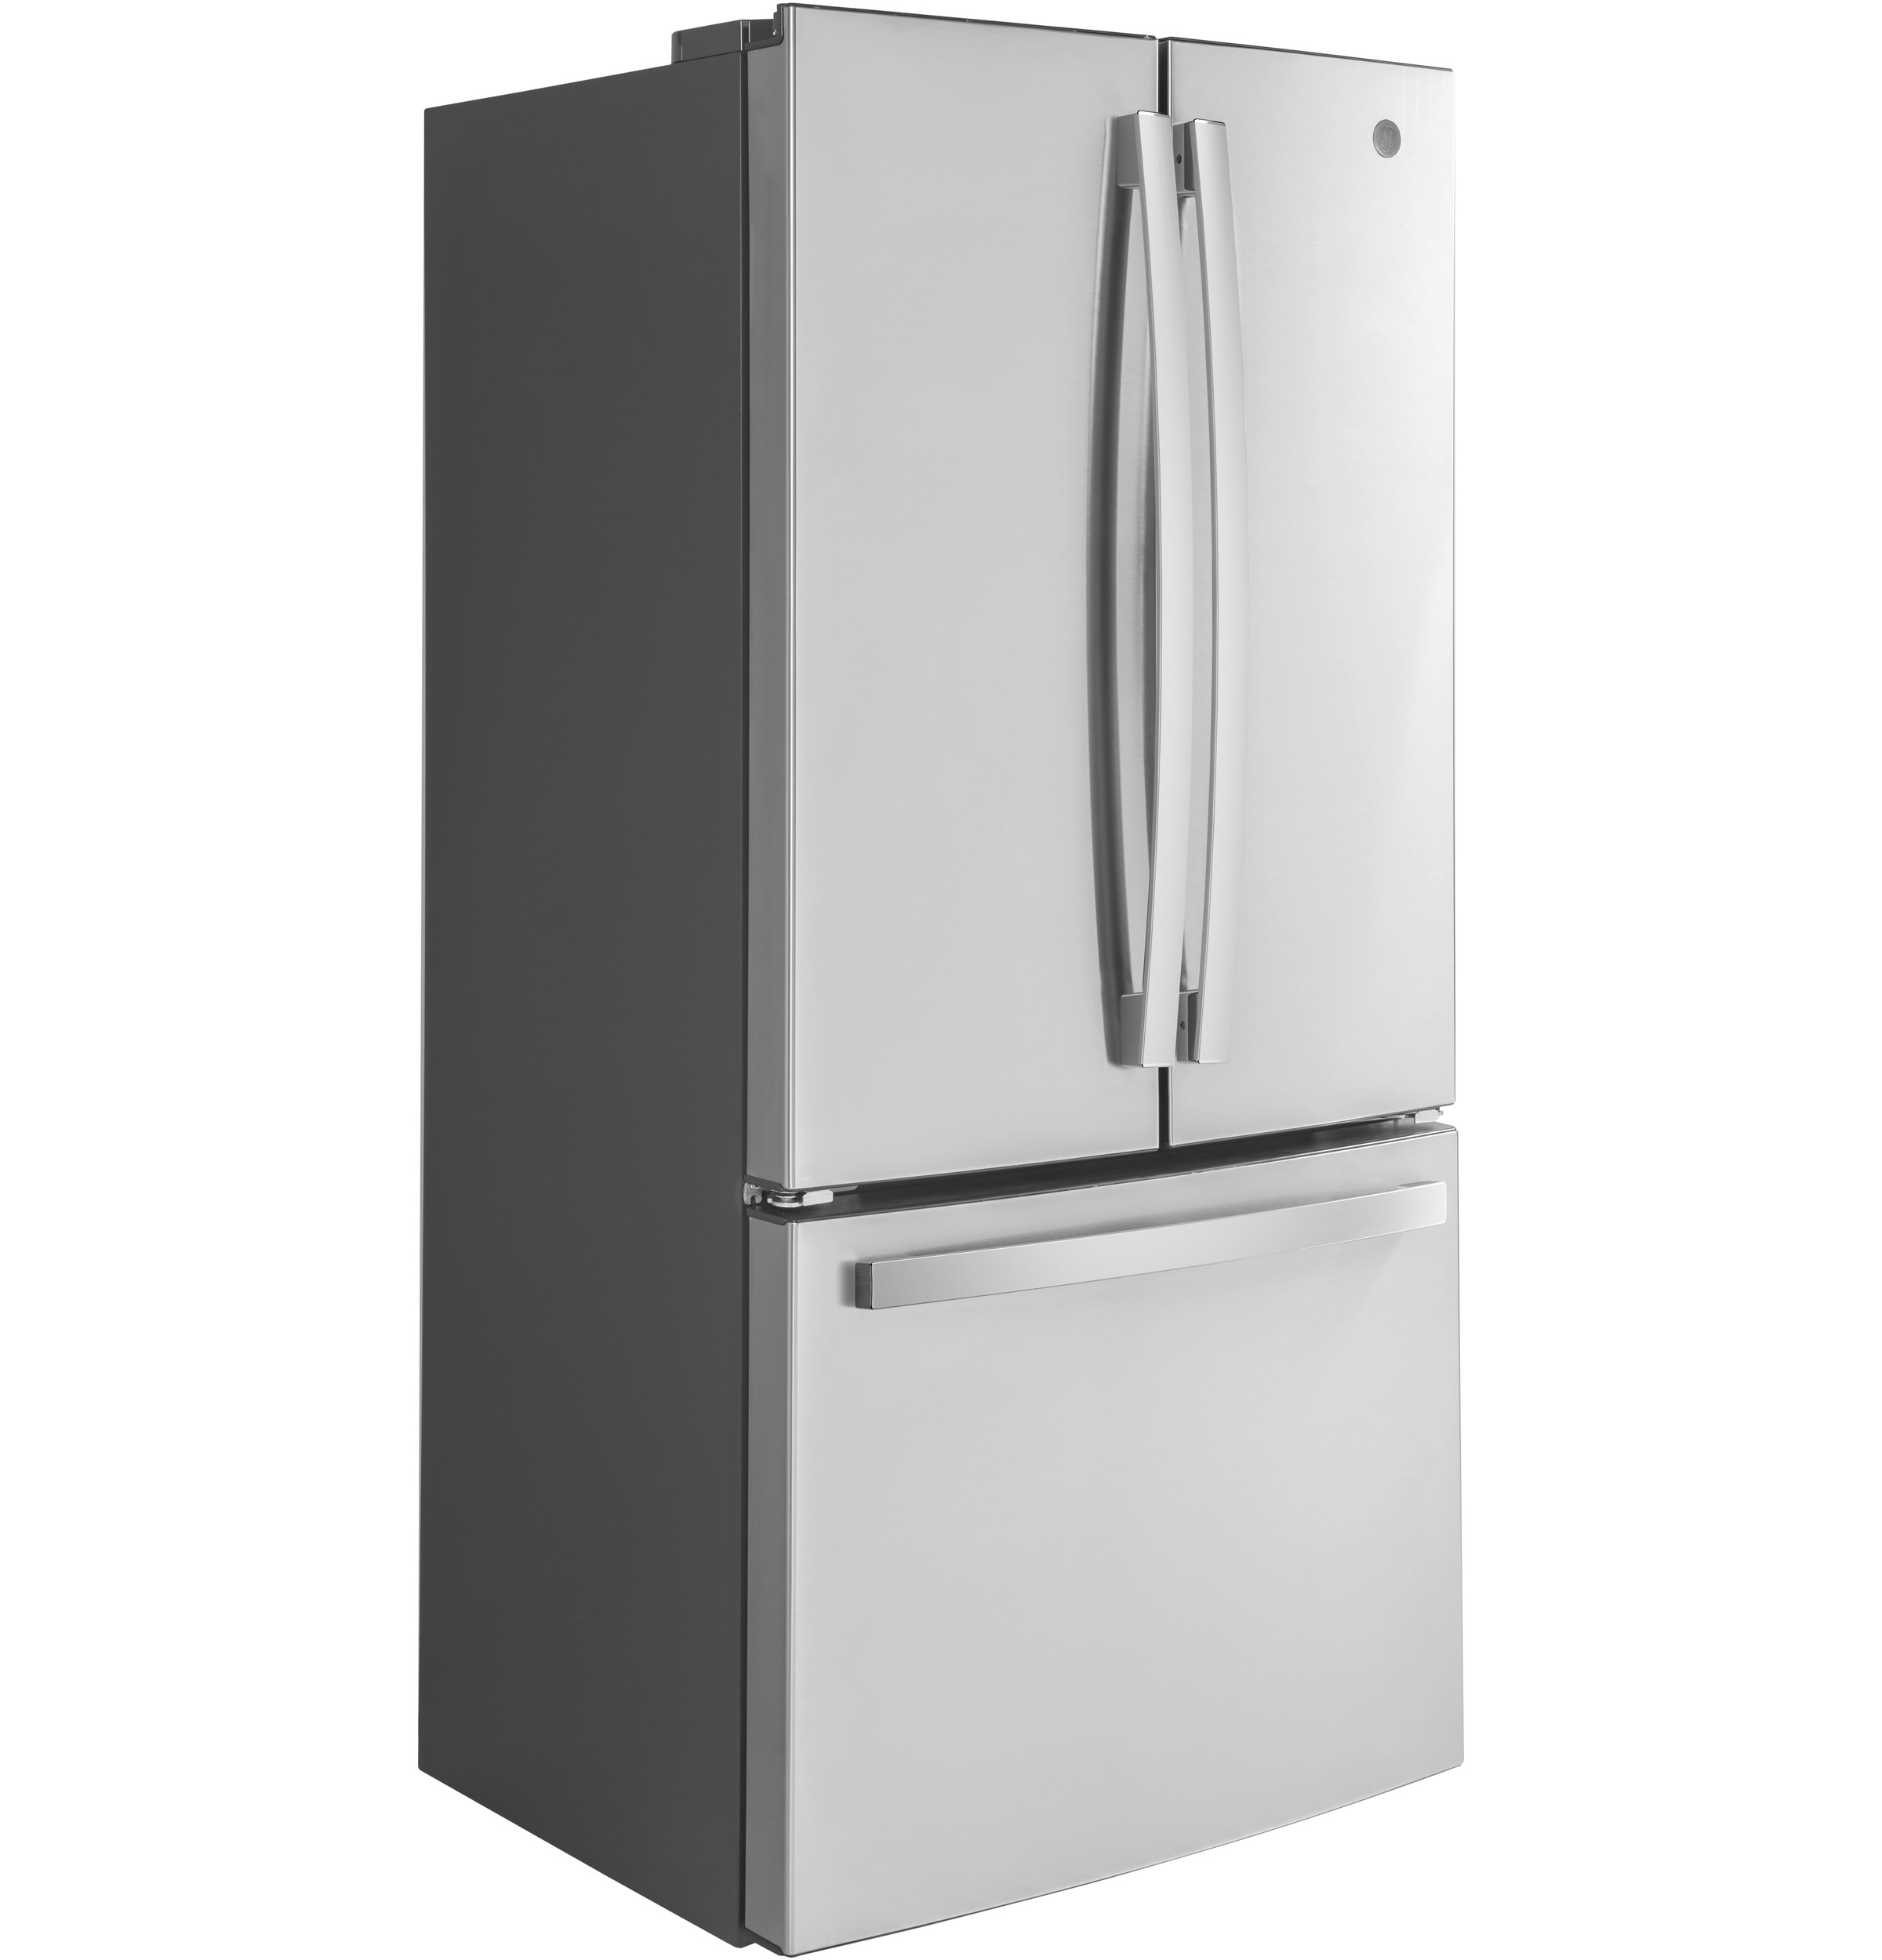 Model: GWE19JSLSS | GE GE® ENERGY STAR® 18.6 Cu. Ft. Counter-Depth French-Door Refrigerator